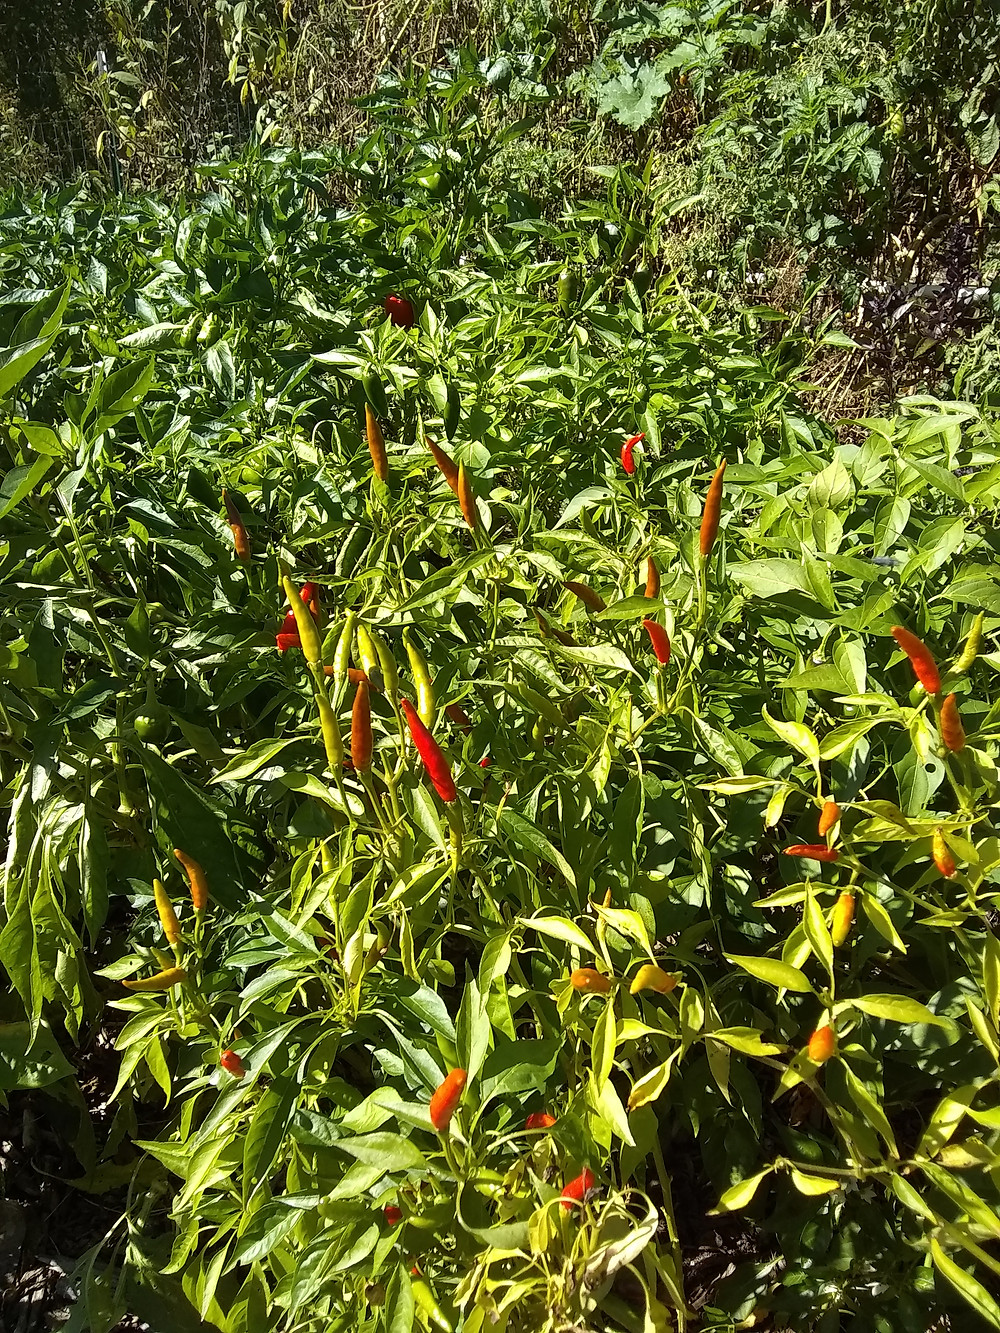 Chili peppers thriving in drought